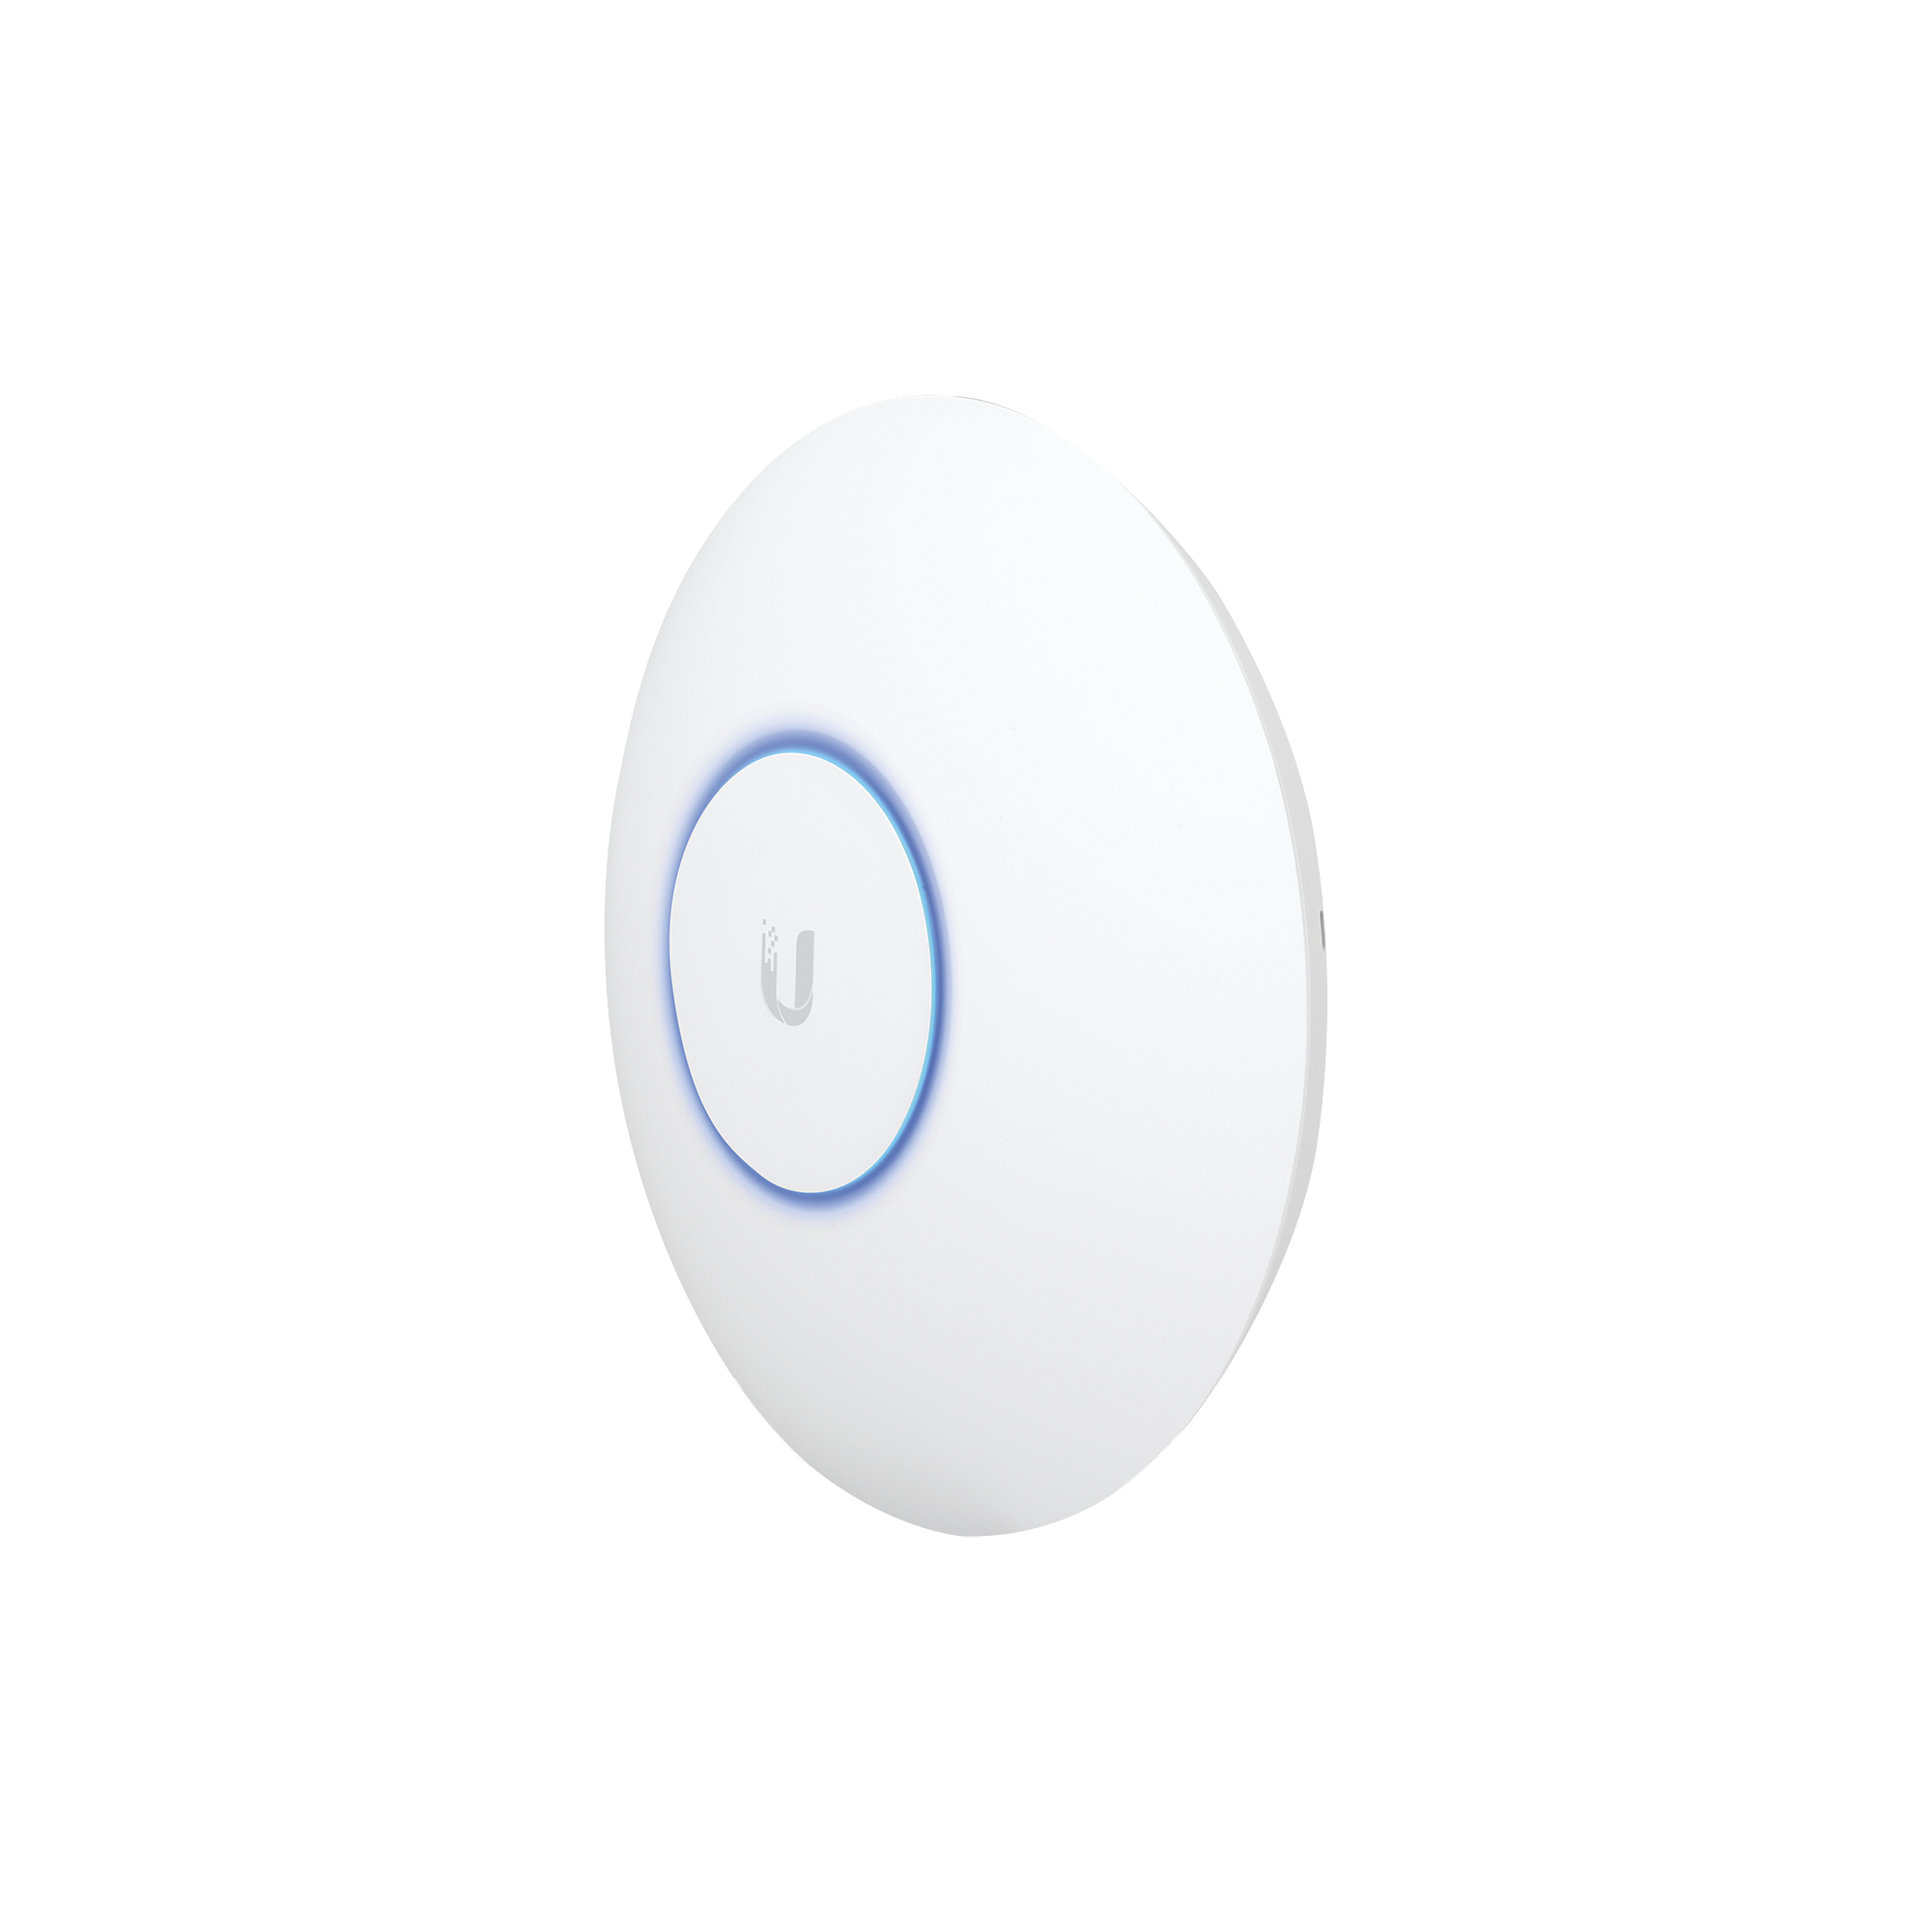 Access Point UniFi HD 802.11ac Wave 2 MU-MIMO 4X4 para alta densidad de usuarios, hasta 500 usuarios WiFi